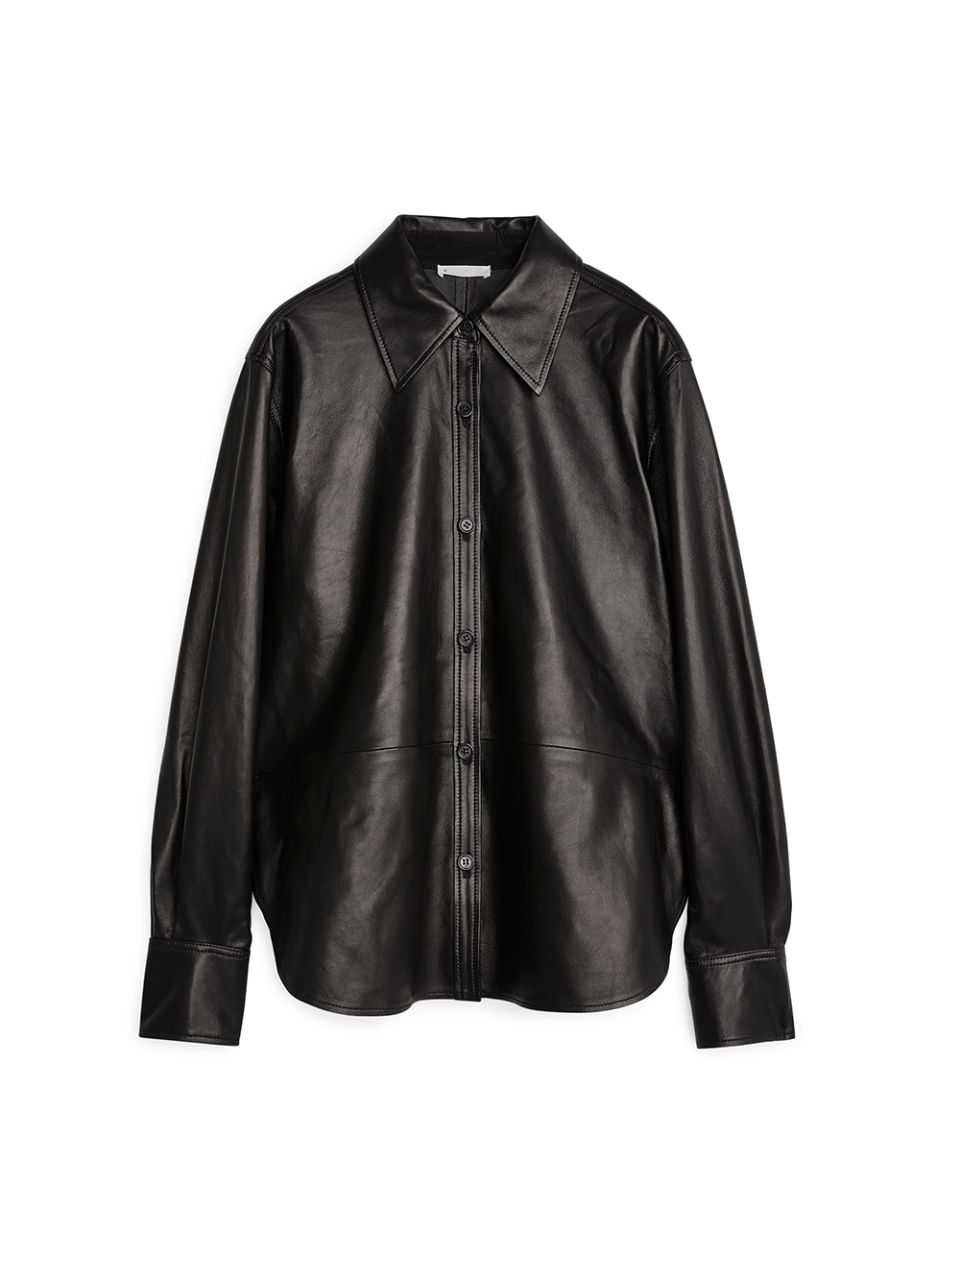 ARKET leather shirt